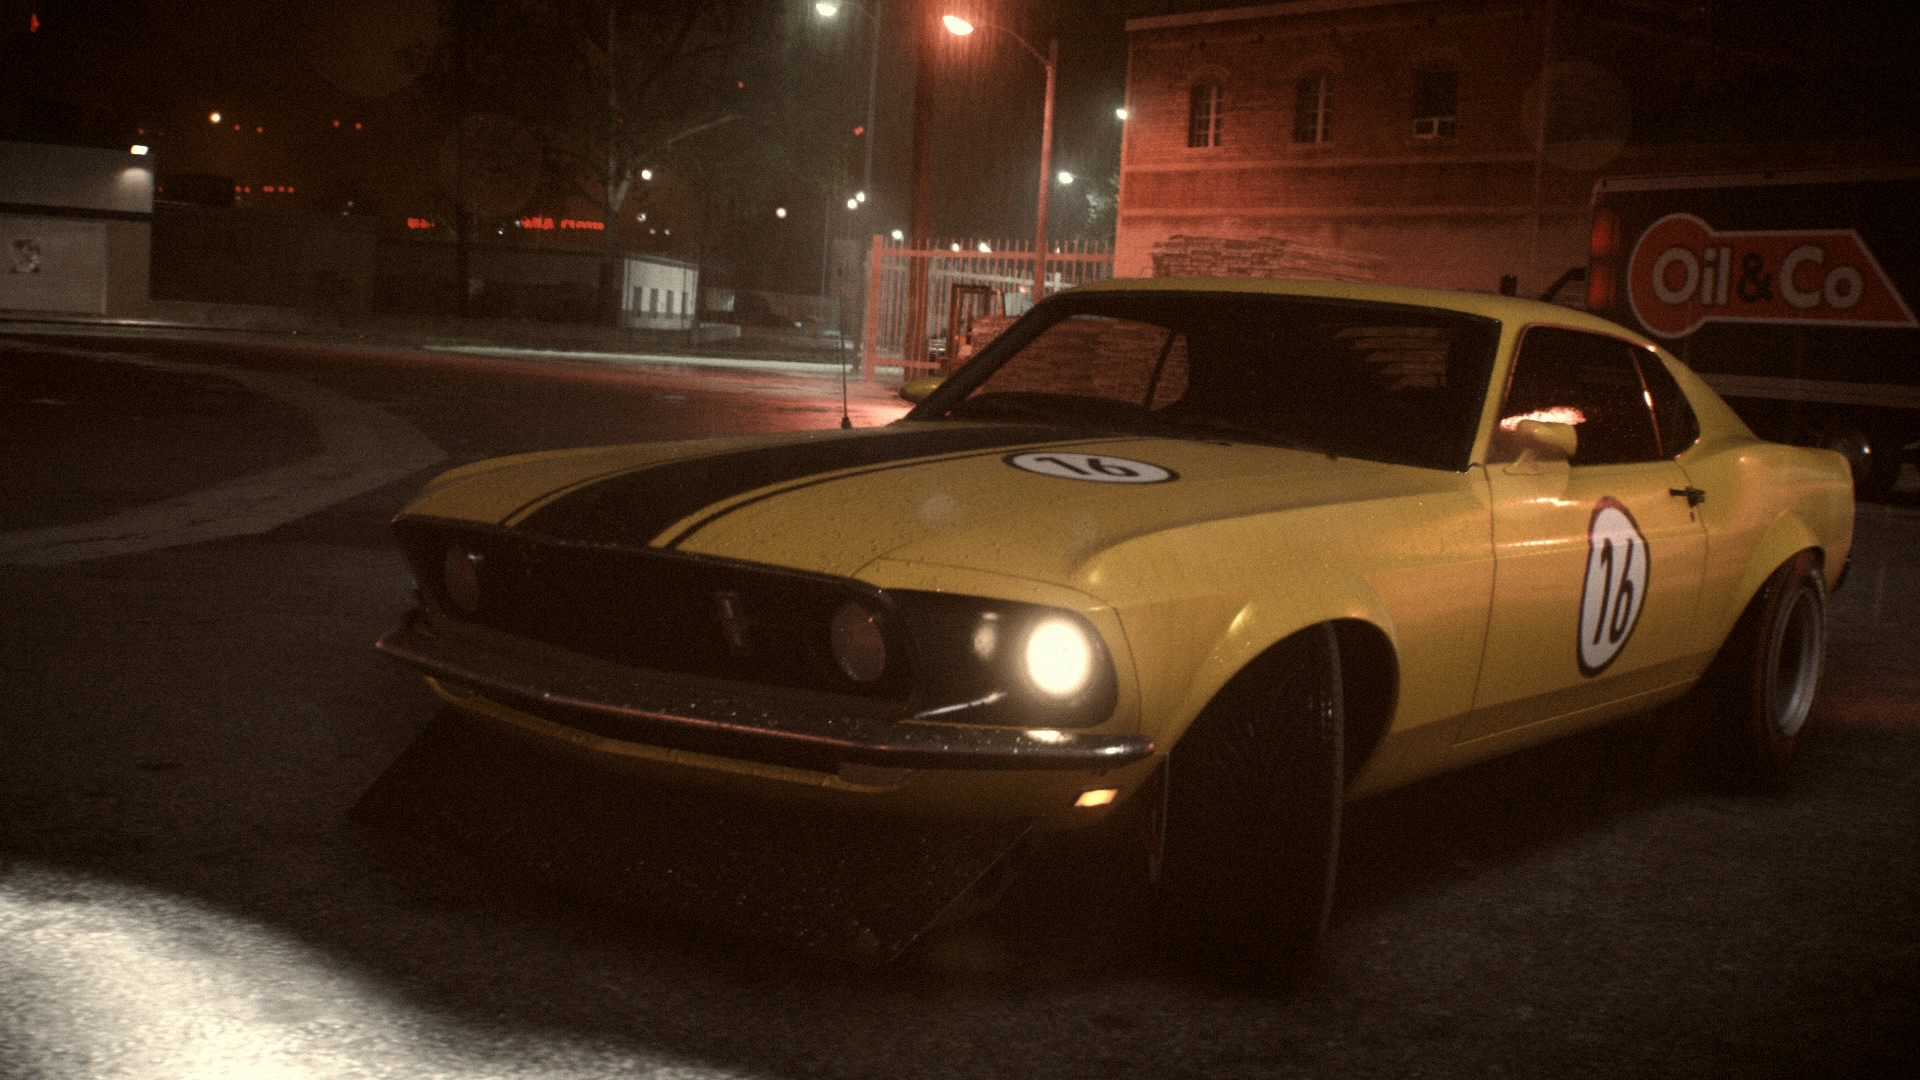 Ford Mustang Boss 302 Need For Speed Need for Speed 2015 Ford